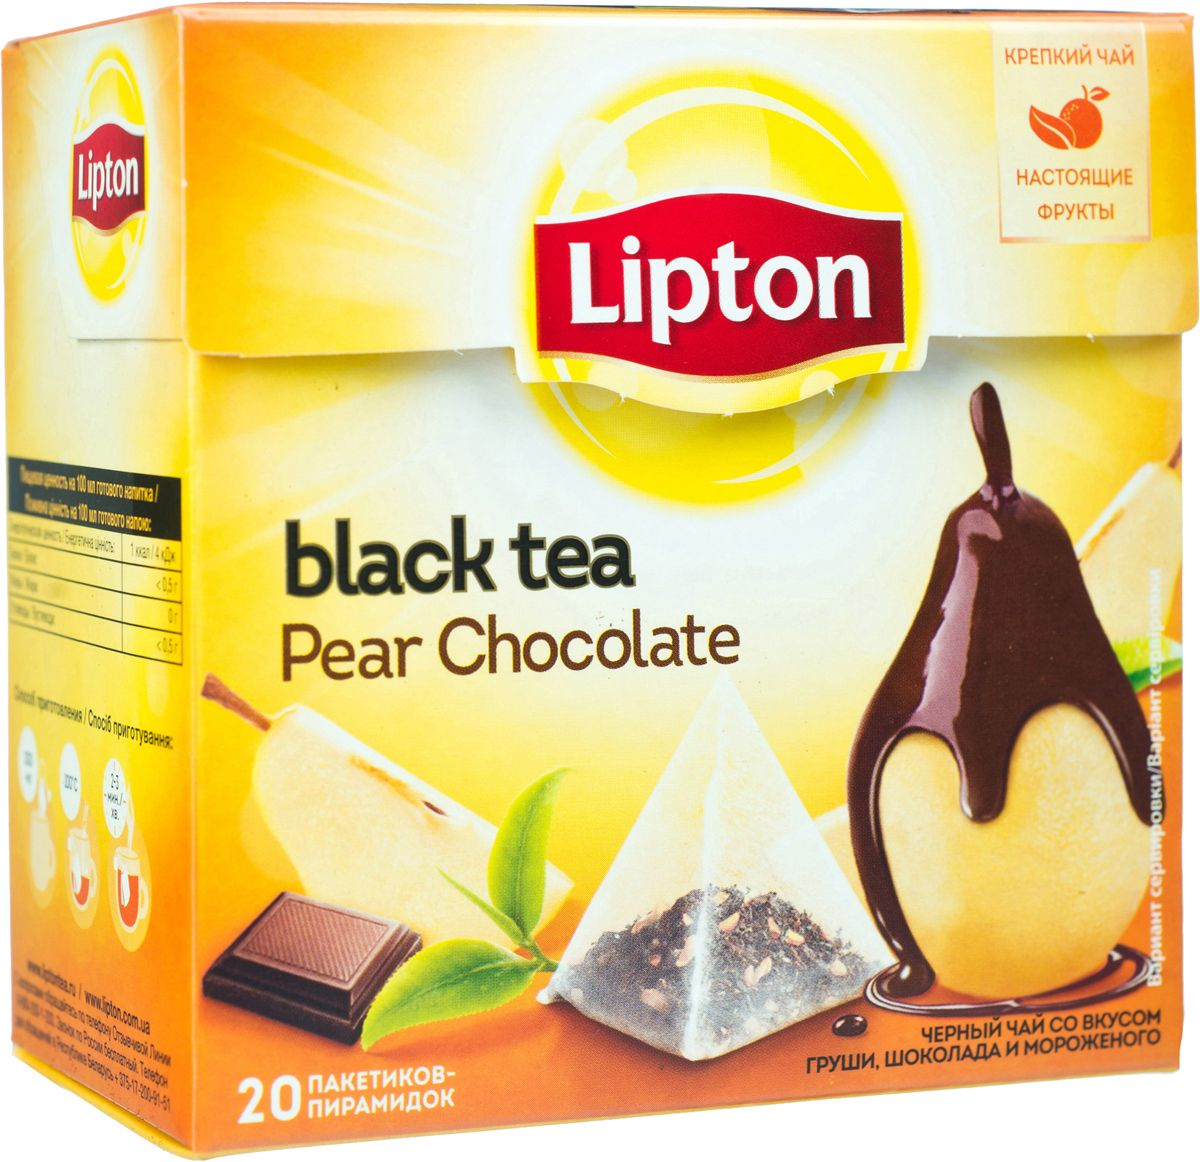 Lipton Черный чай Pear Chocolate 20 шт21187947/21141144